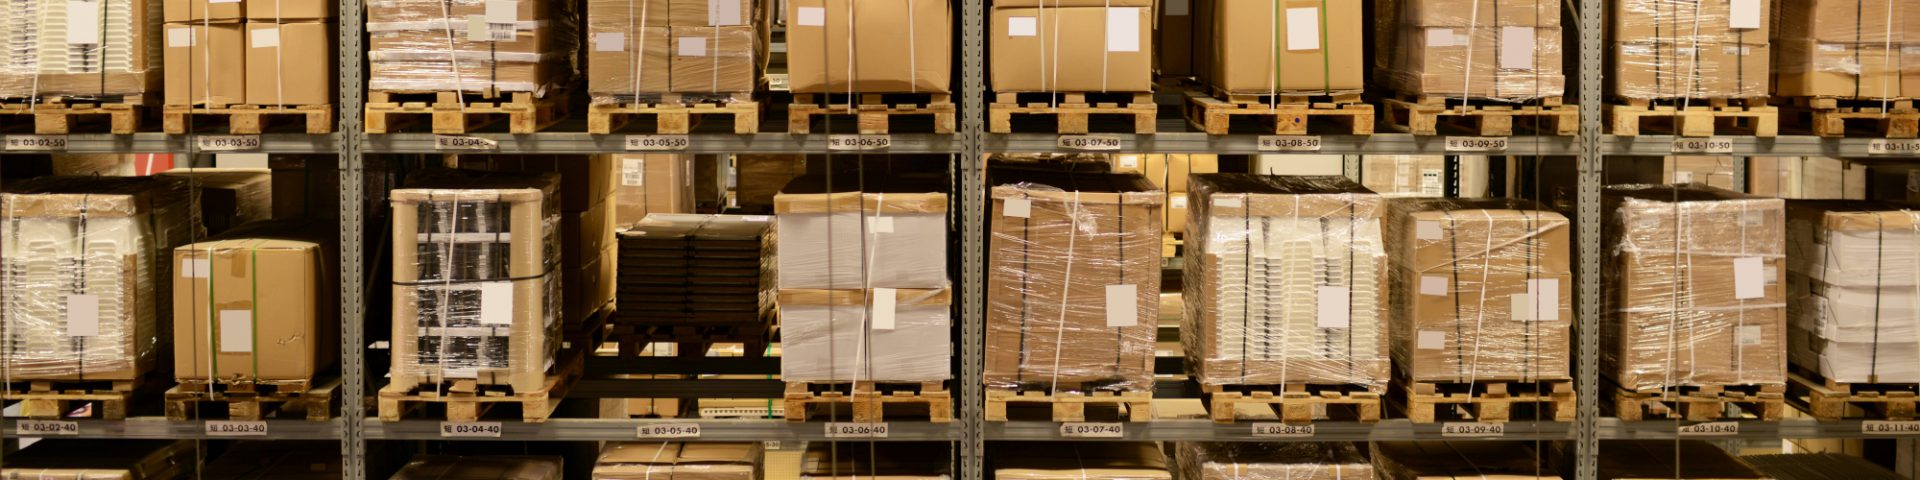 Warehouse with Excess Inventory